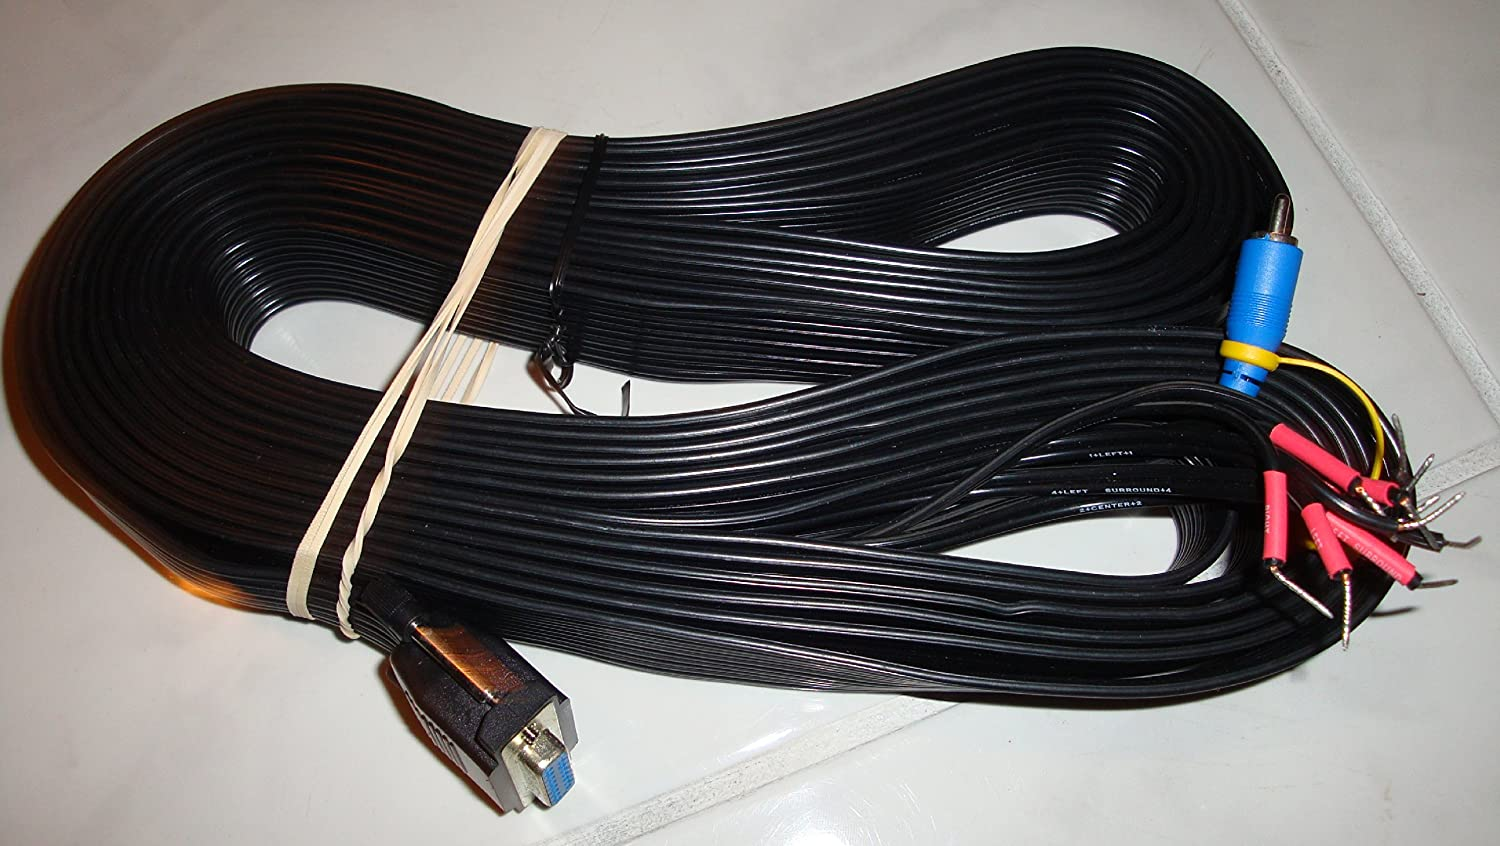 91VP4Uej%2BCL._SL1500_ amazon com bose audio cable 15 pin from subwoofer to receiver  at gsmportal.co